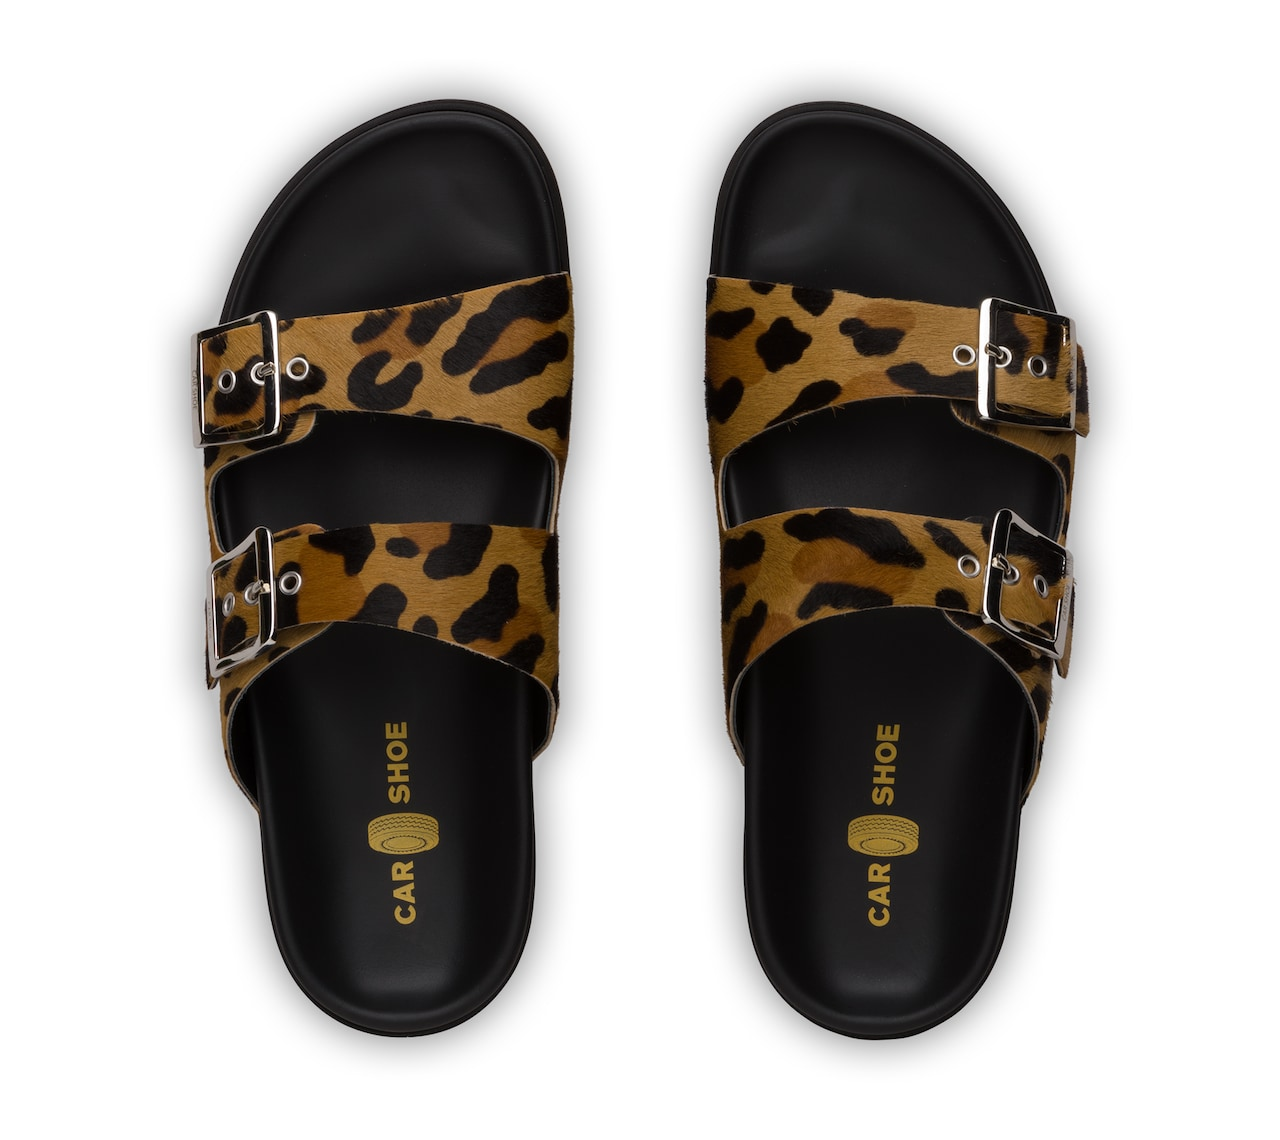 SANDALS LEOPARD PRINT AND LEATHER